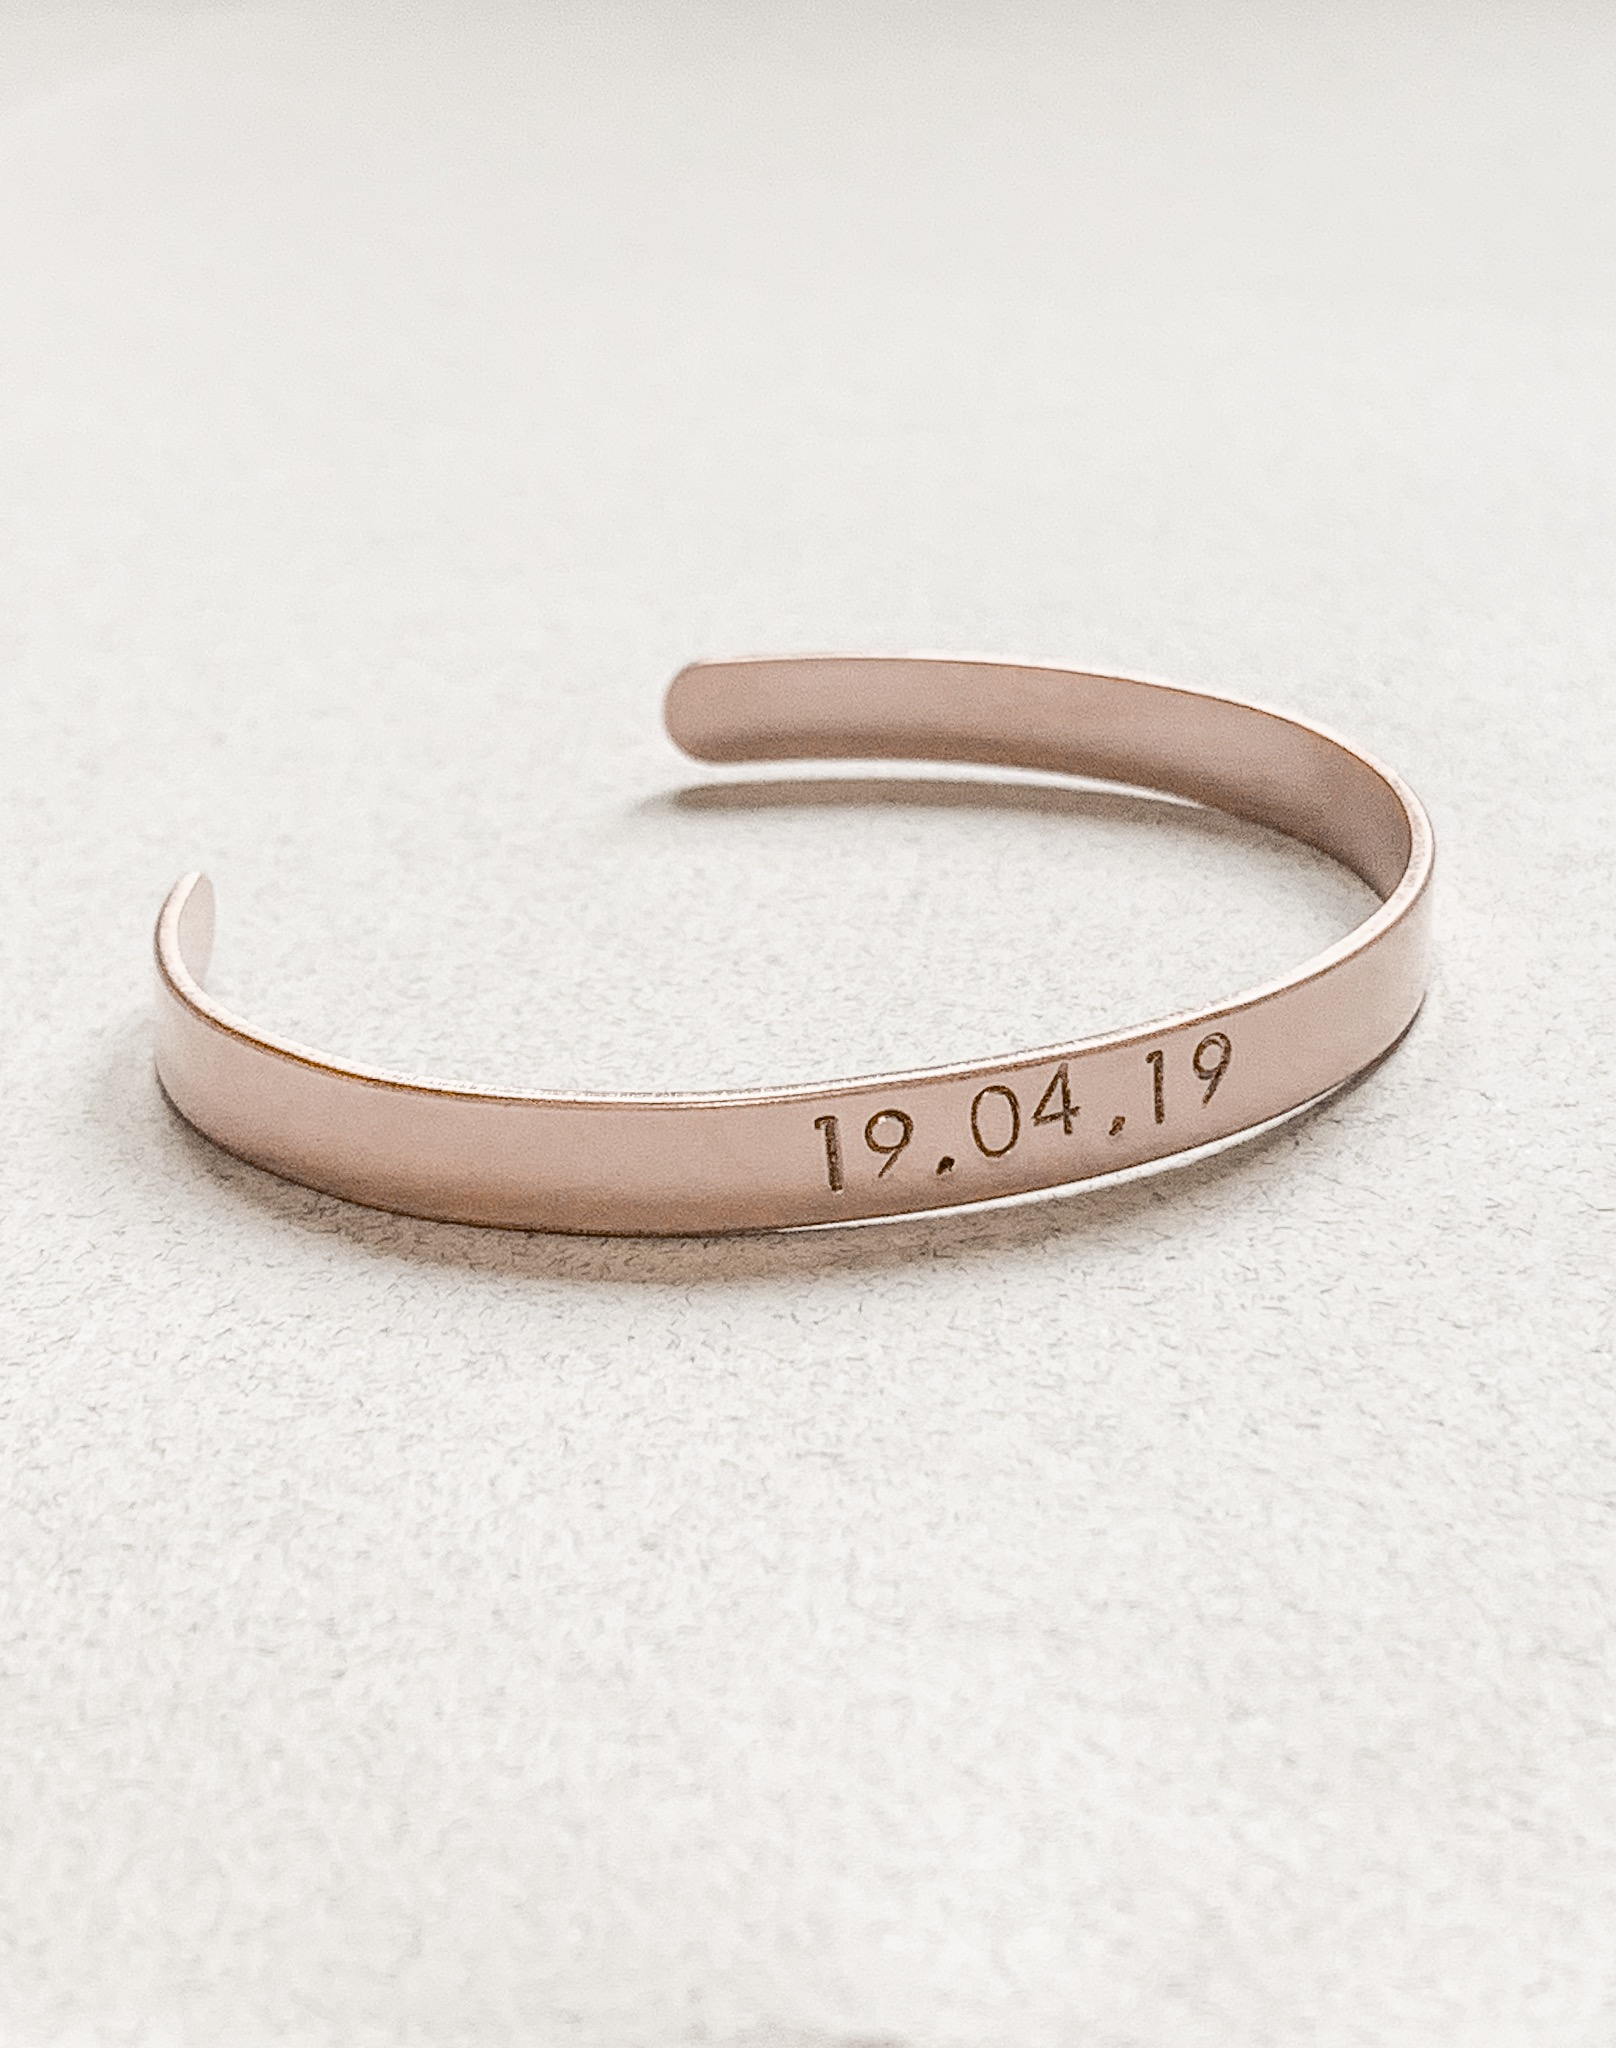 Make your own - hand stamped jewellery workshops in Bristol